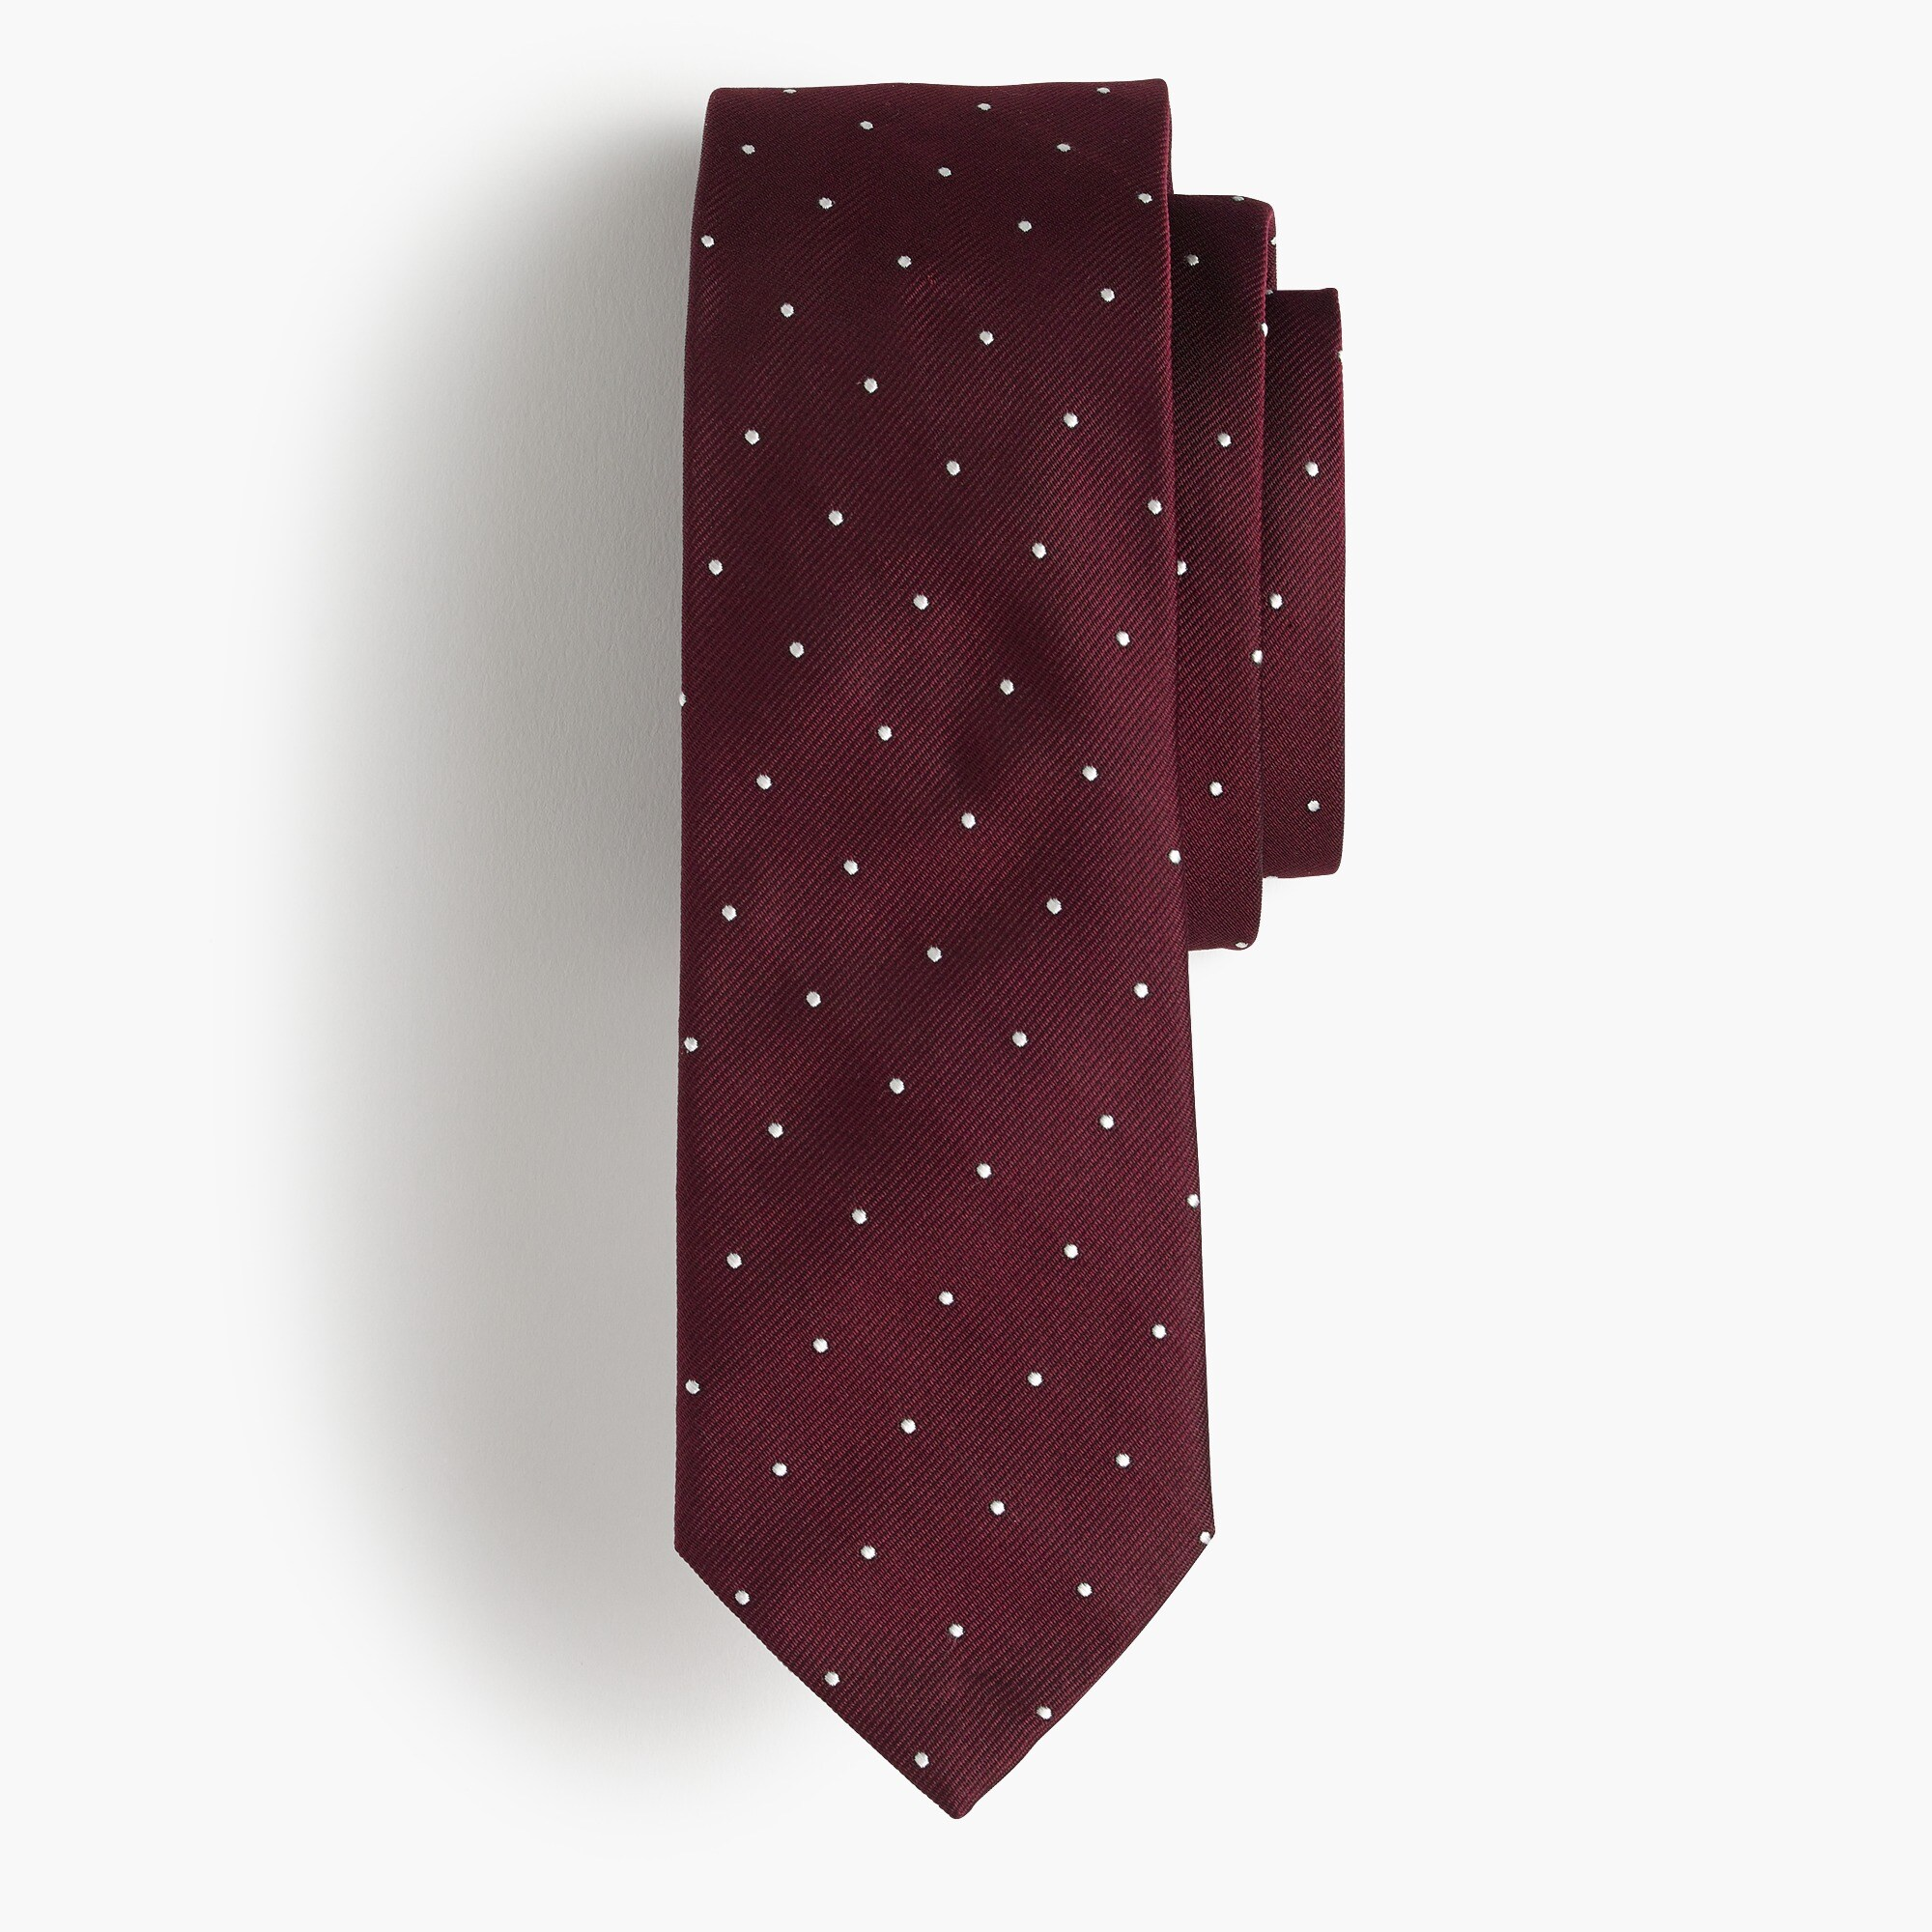 Image 1 for Silk tie in white dot